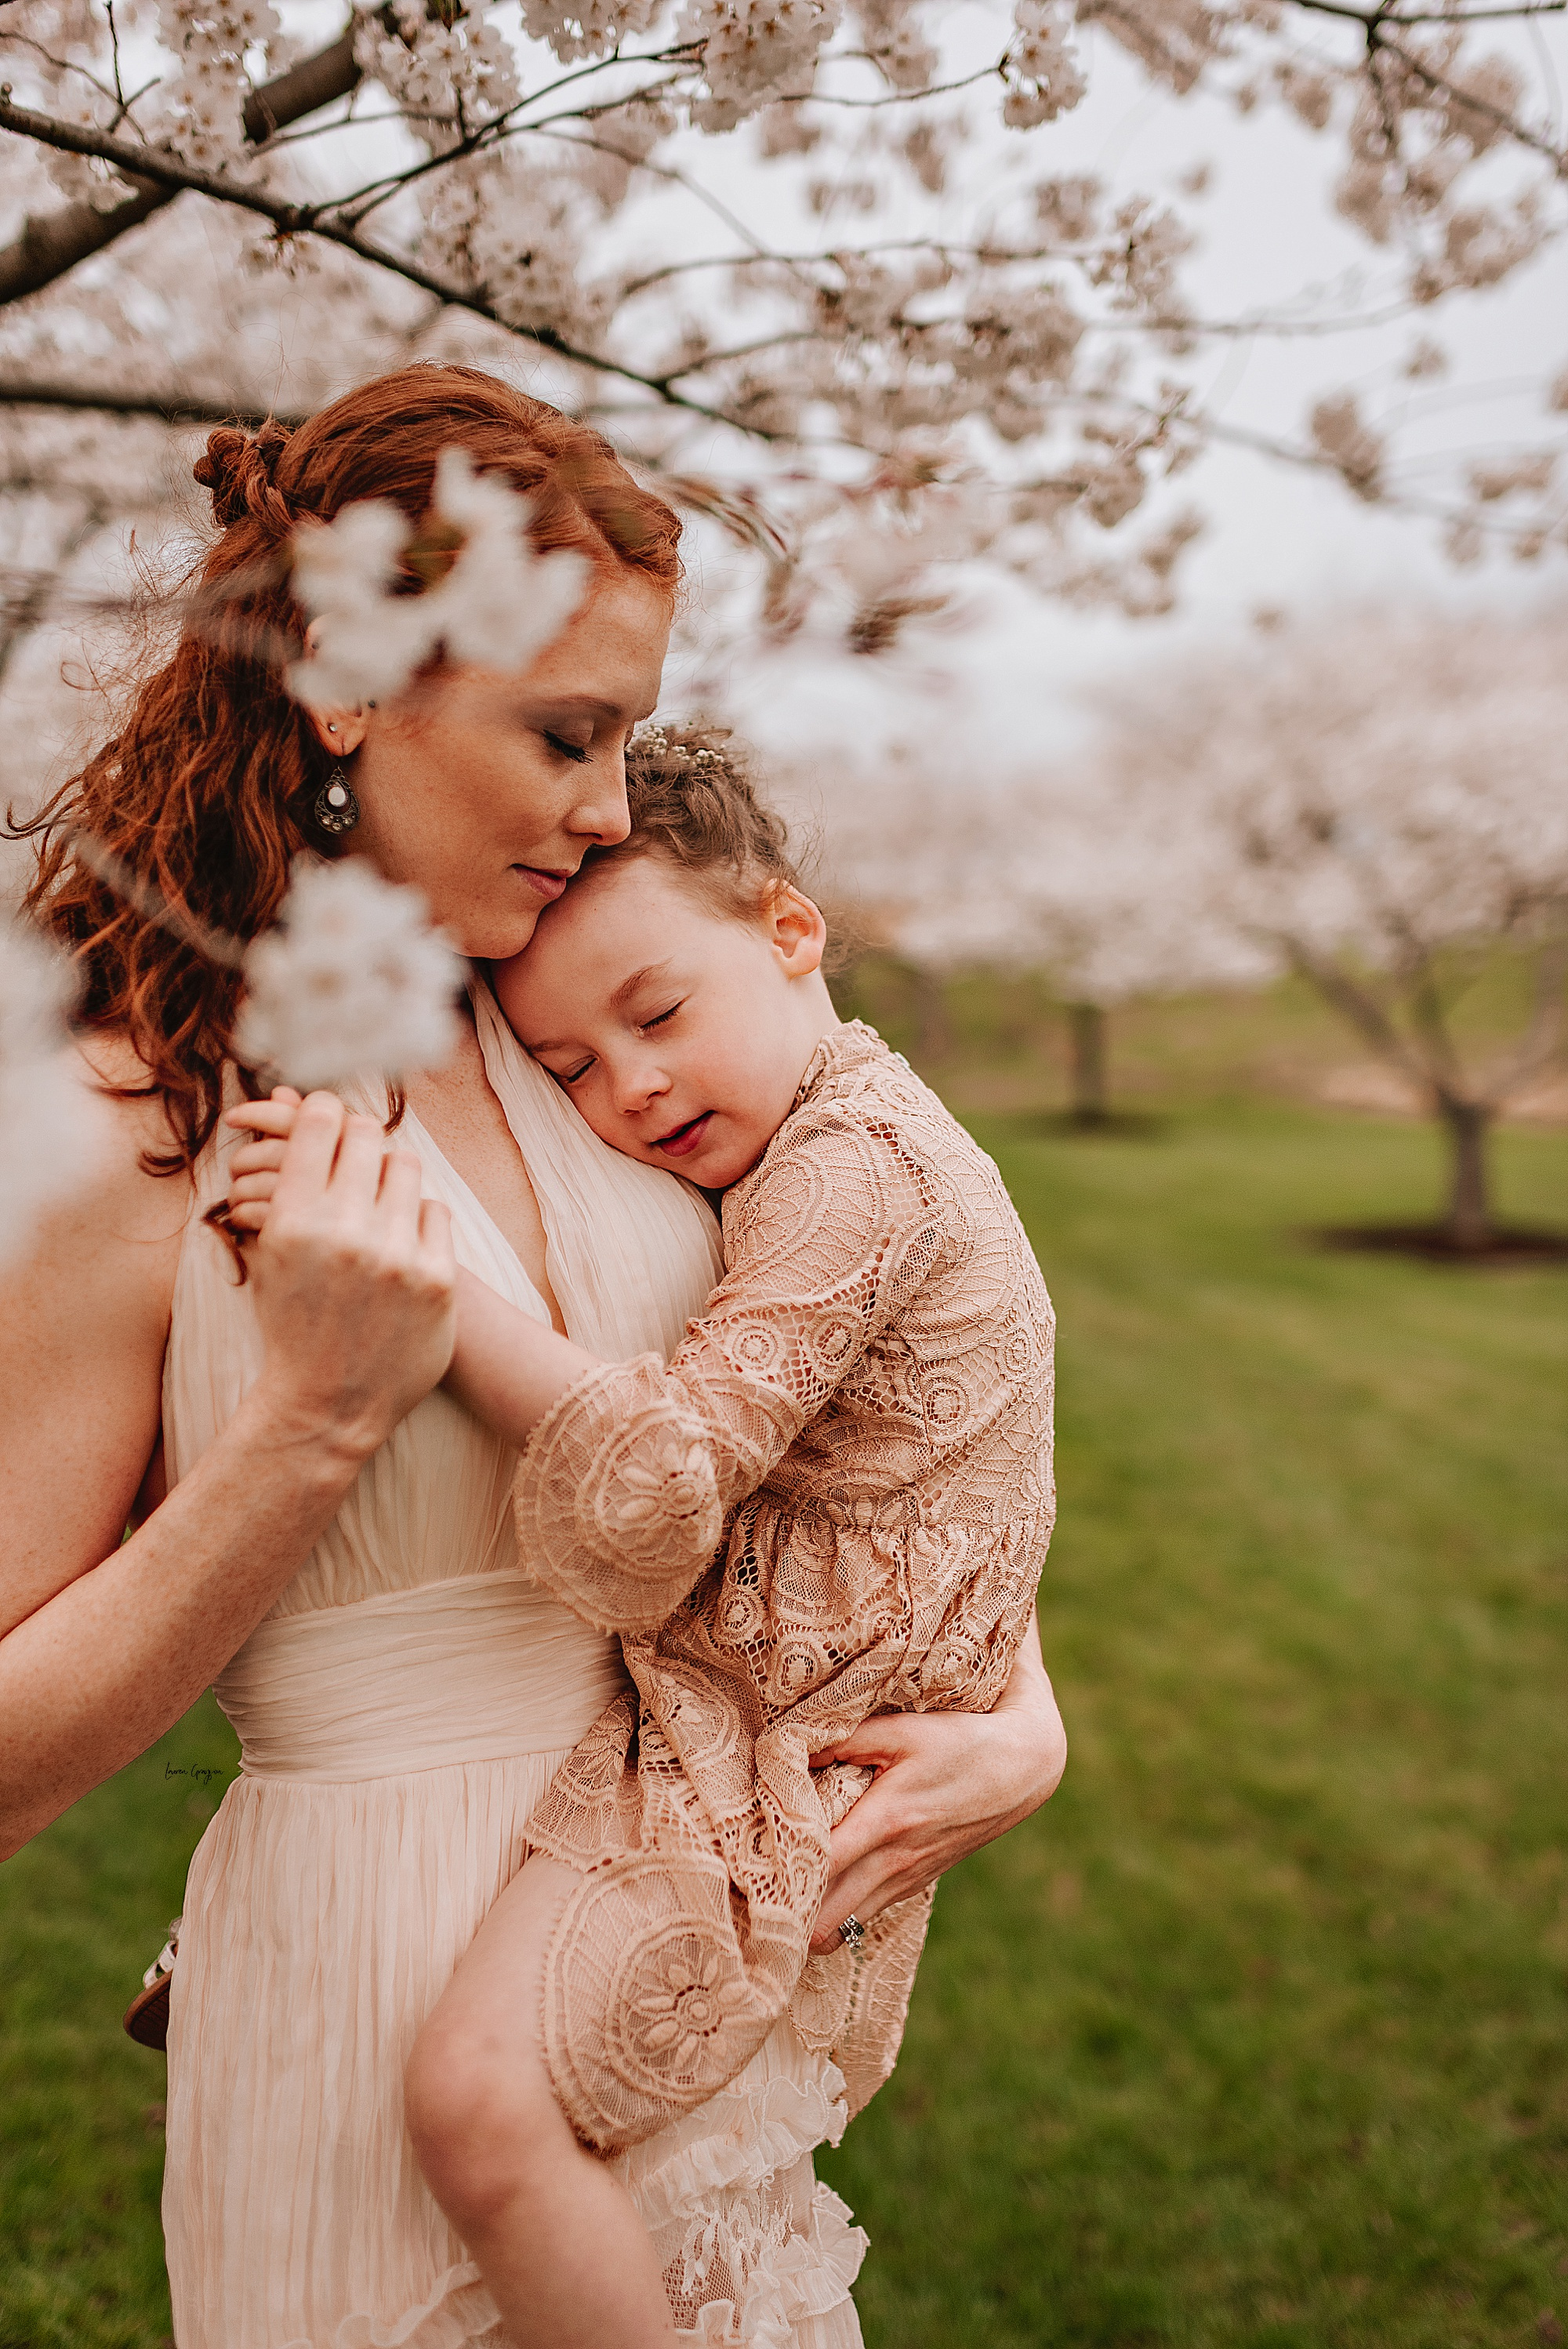 lauren-grayson-photography-cleveland-ohio-motherhood-family-child-photo-session-cherry-blossoms_0024.jpg